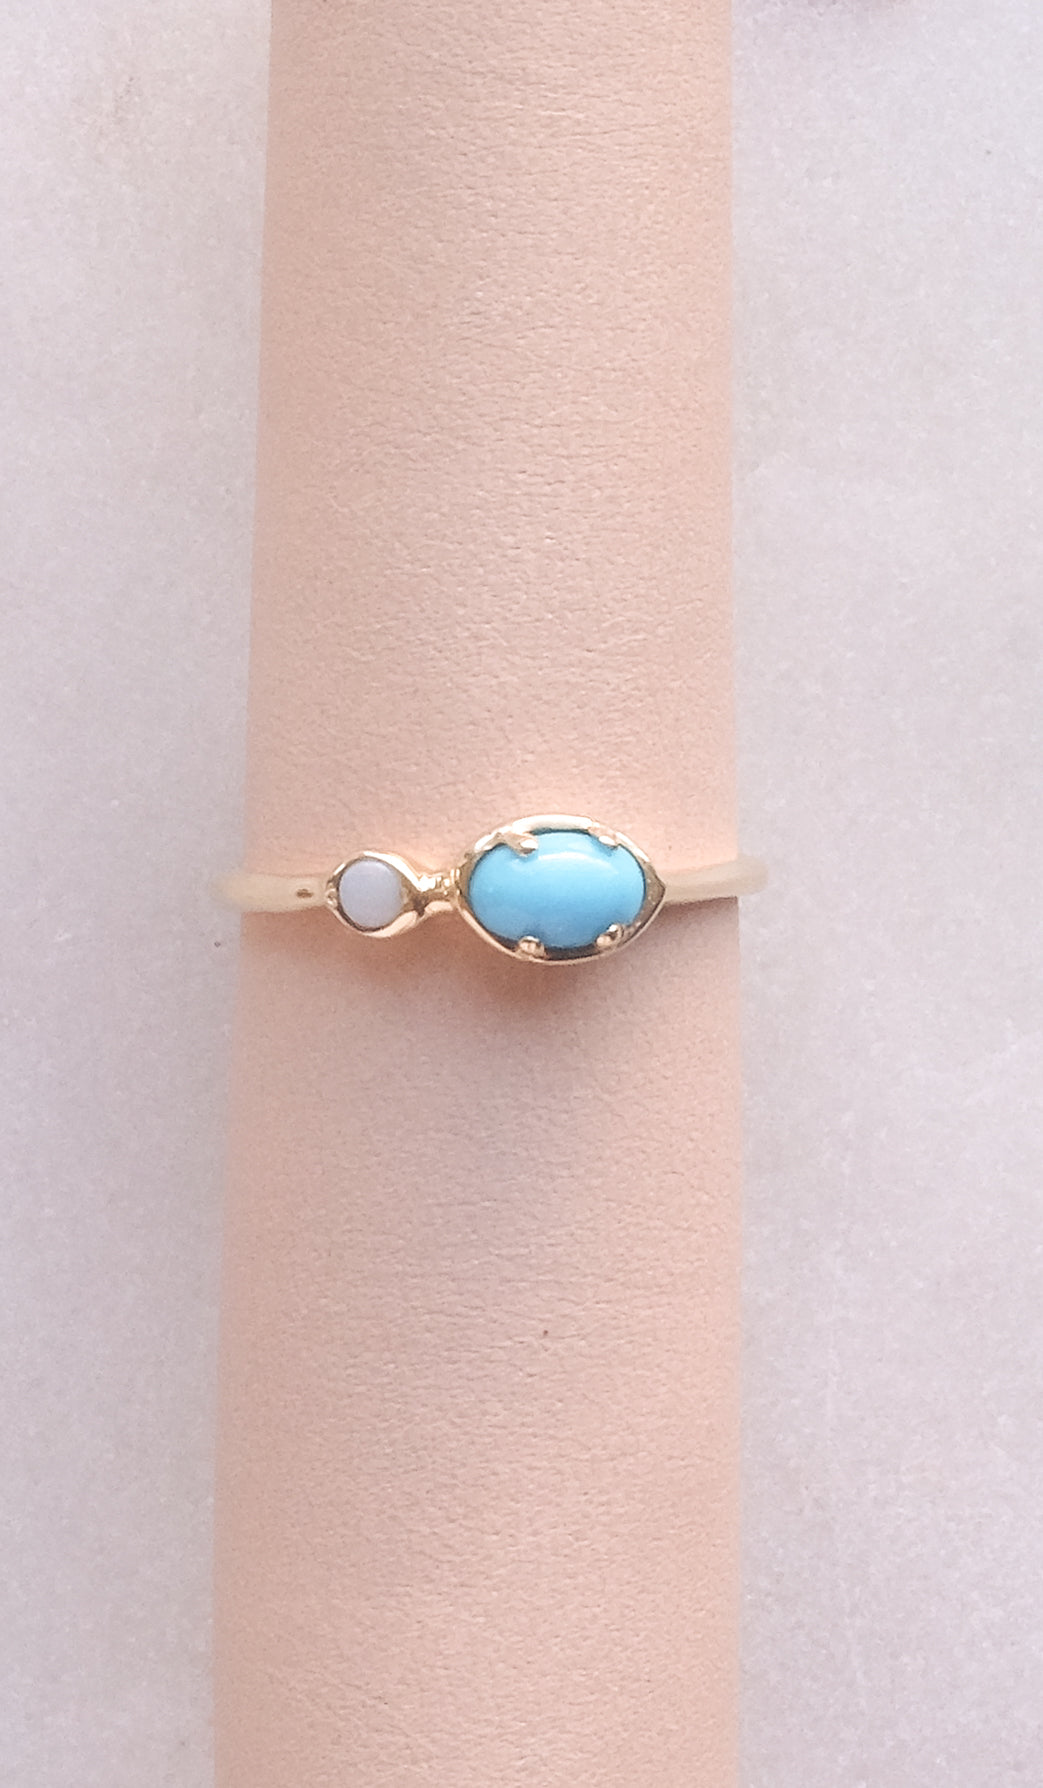 Kathryn Bentley Ellipse Dot Ring: Turquoise & Opal, Jewelry, Kathryn Bentley, SPARTAN SHOP